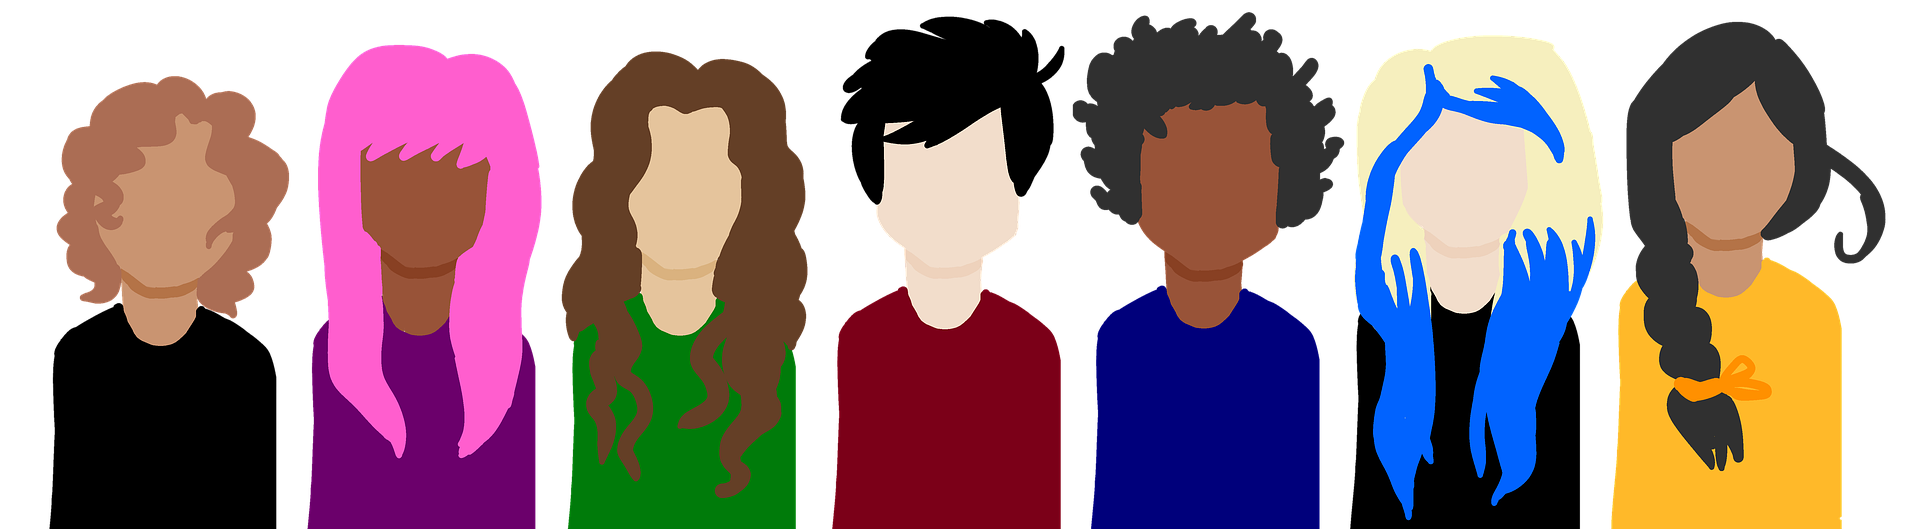 an abstract illustration of diverse characters